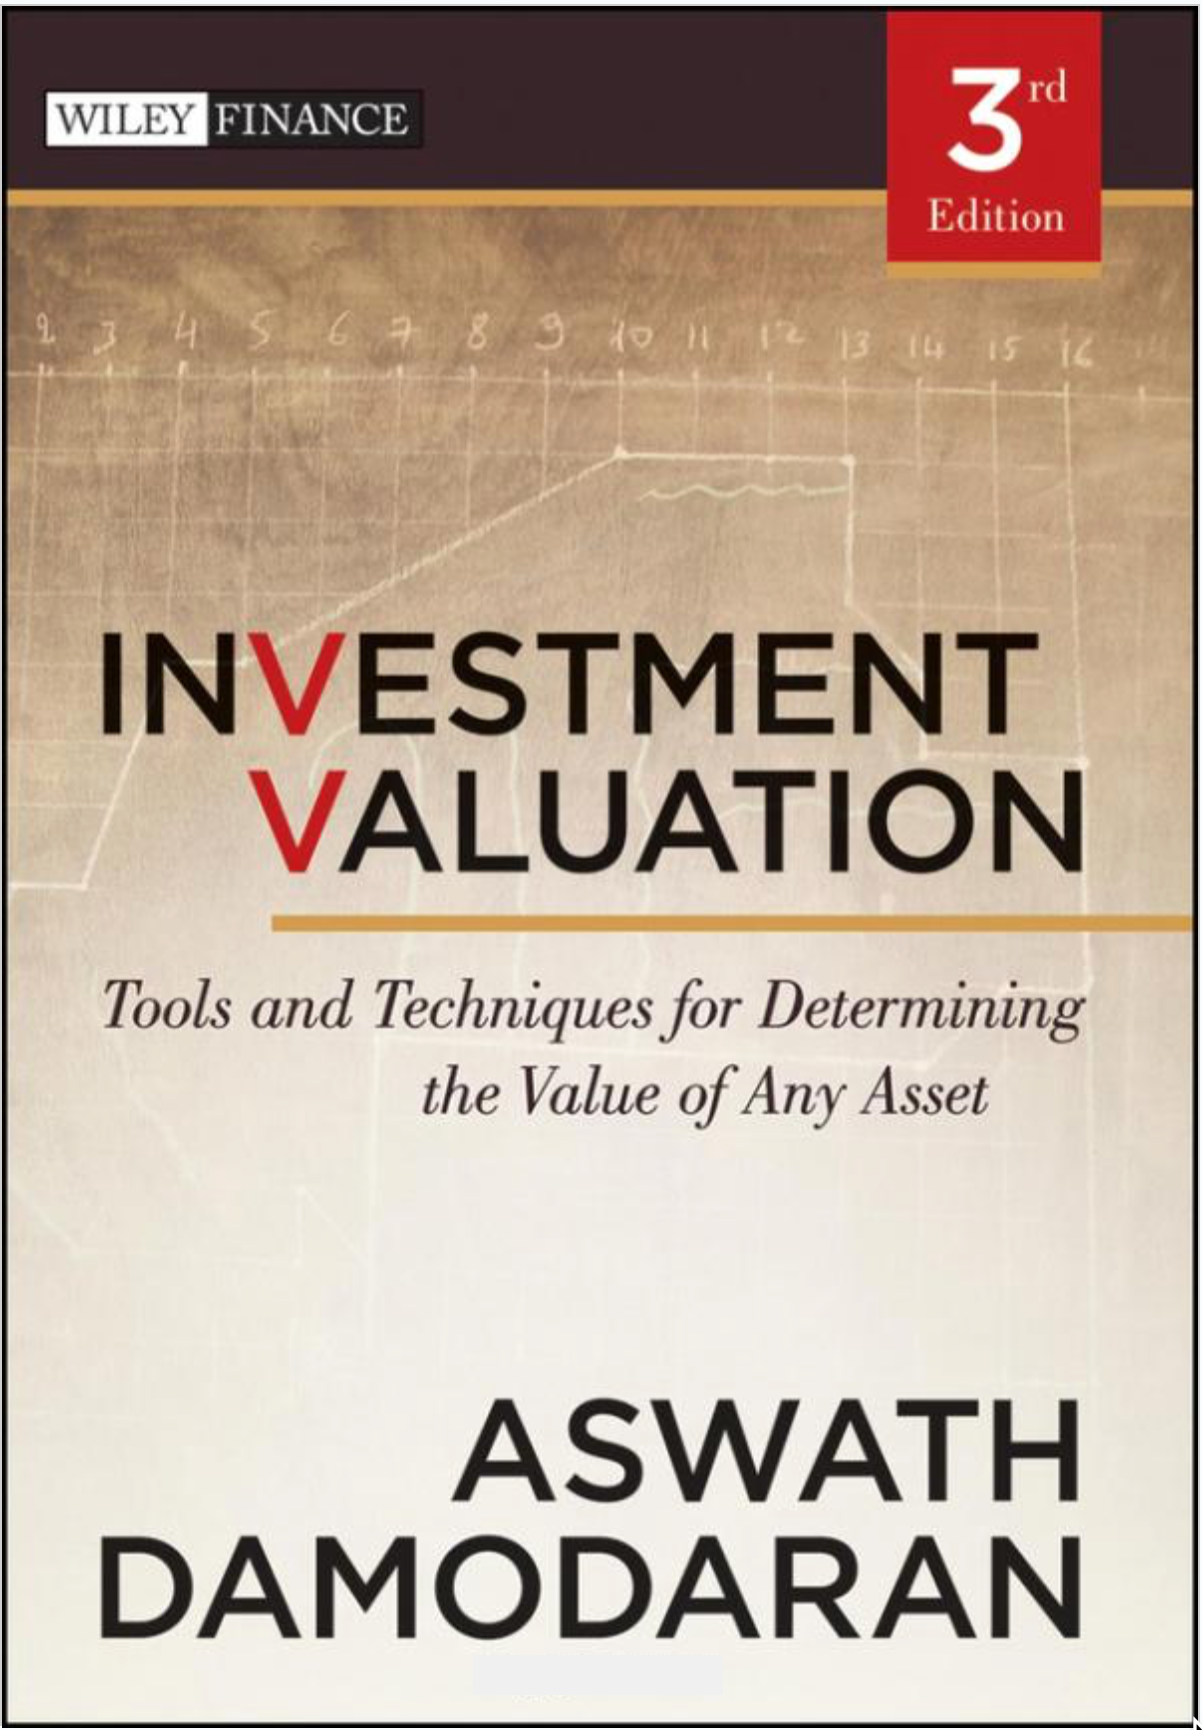 Investment Valuation: Tools And Techniques For Determining The Value Of Any Asset (3rd Edition) – Aswath Damodaran